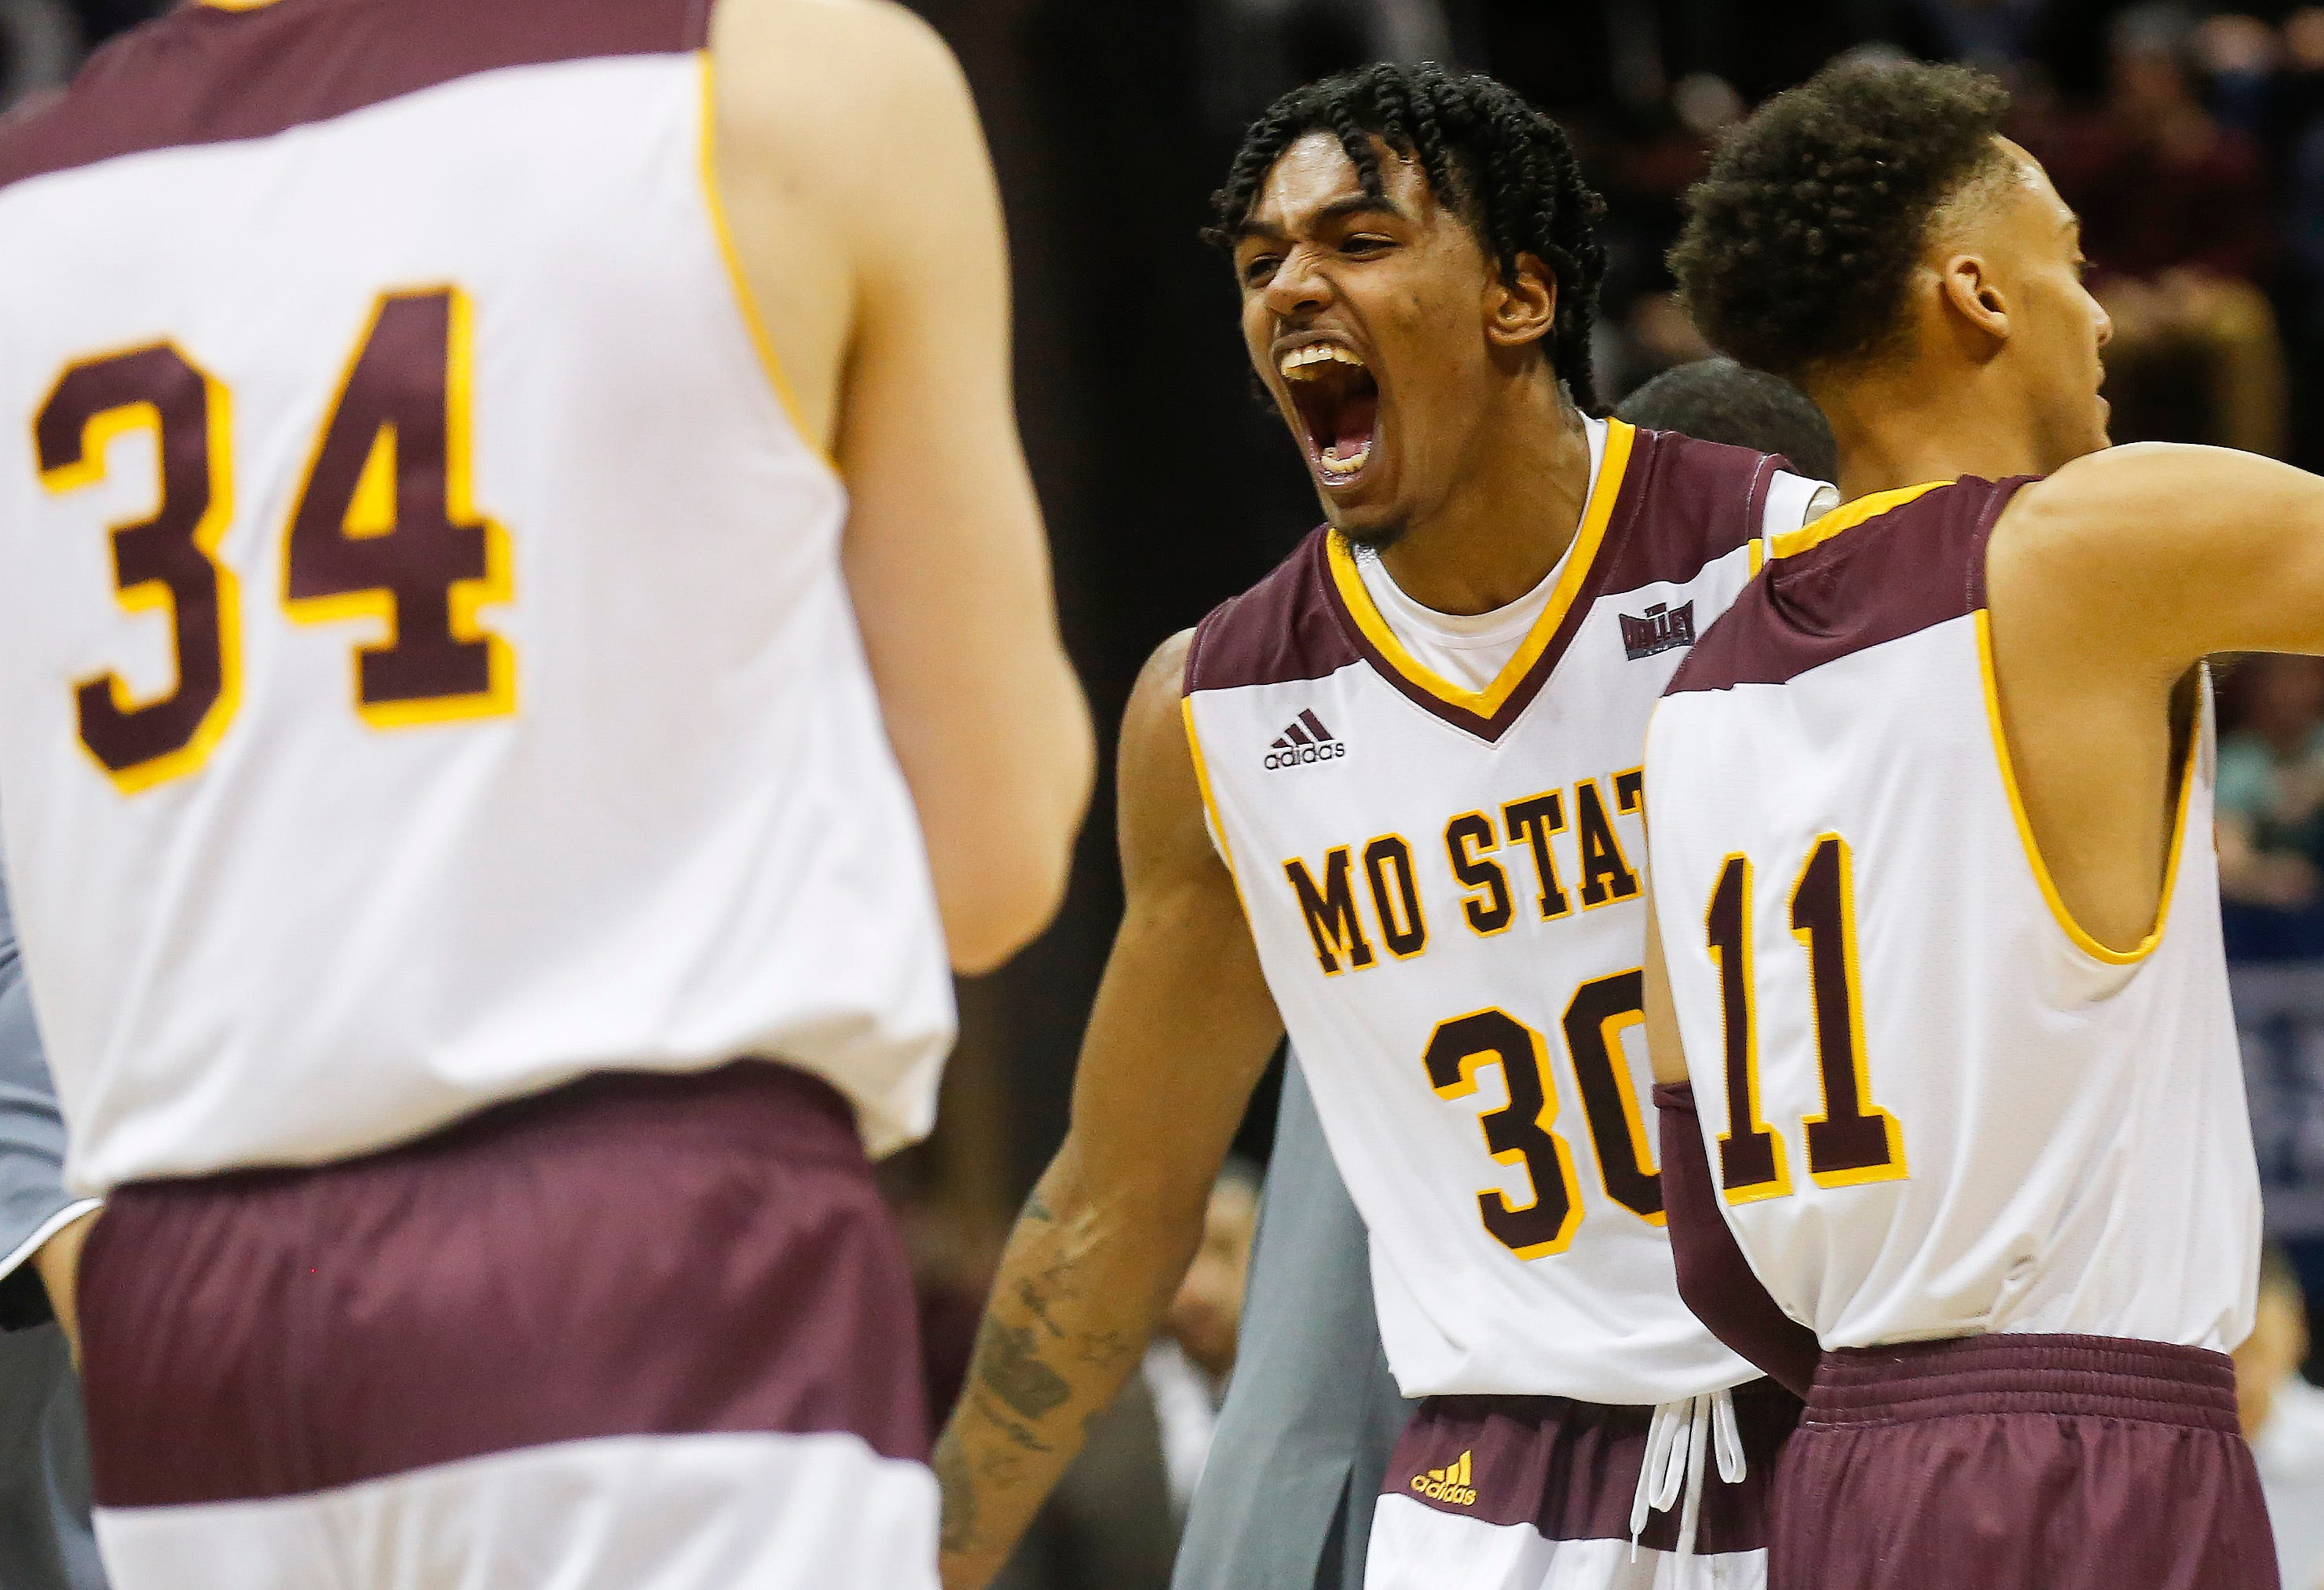 Tulio Da Silva, of Missouri State, screams out during the Bears 70-35 win over Loyola at JQH Arena on Wednesday, Jan. 23, 2019.